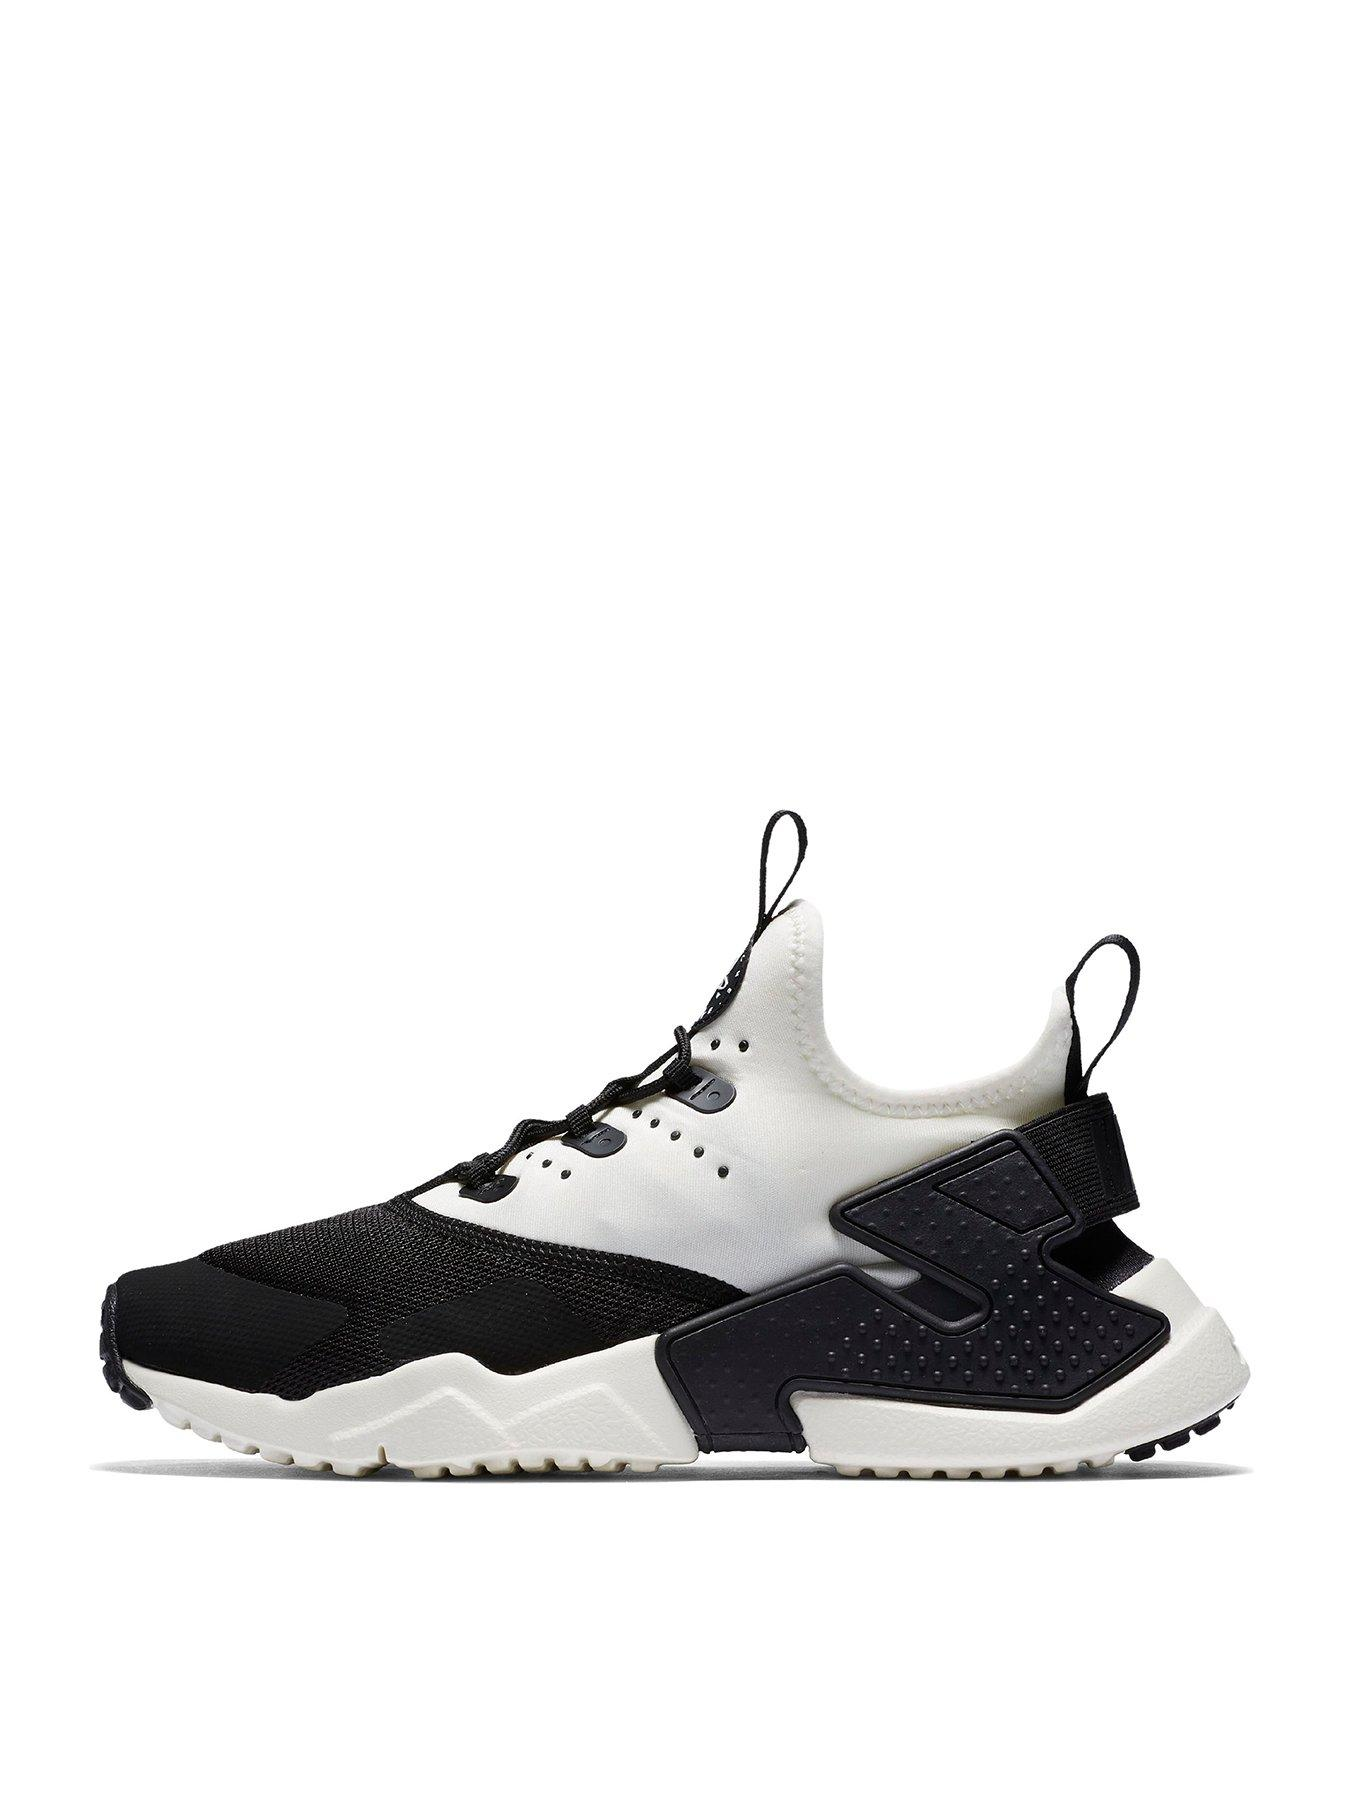 69ed35bdcc63 ... cheapest nike huarache run drift junior trainer very 4412e 94753